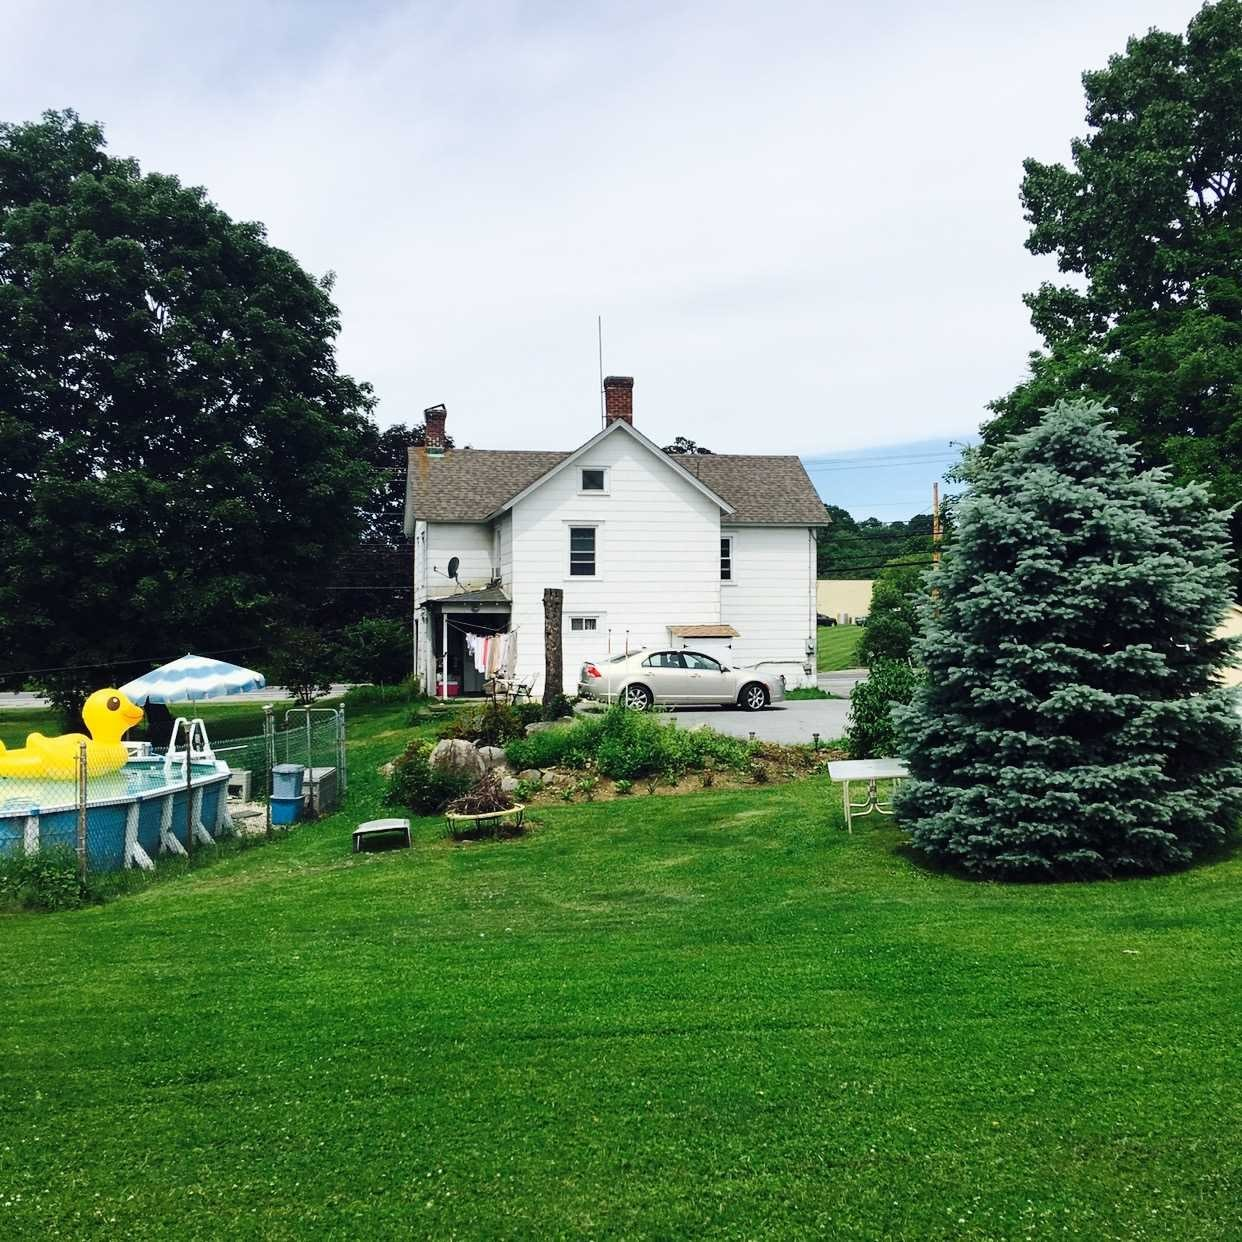 Single Family Home for Sale at 1514 ROUTE 9W 1514 ROUTE 9W Marlboro, New York 12542 United States